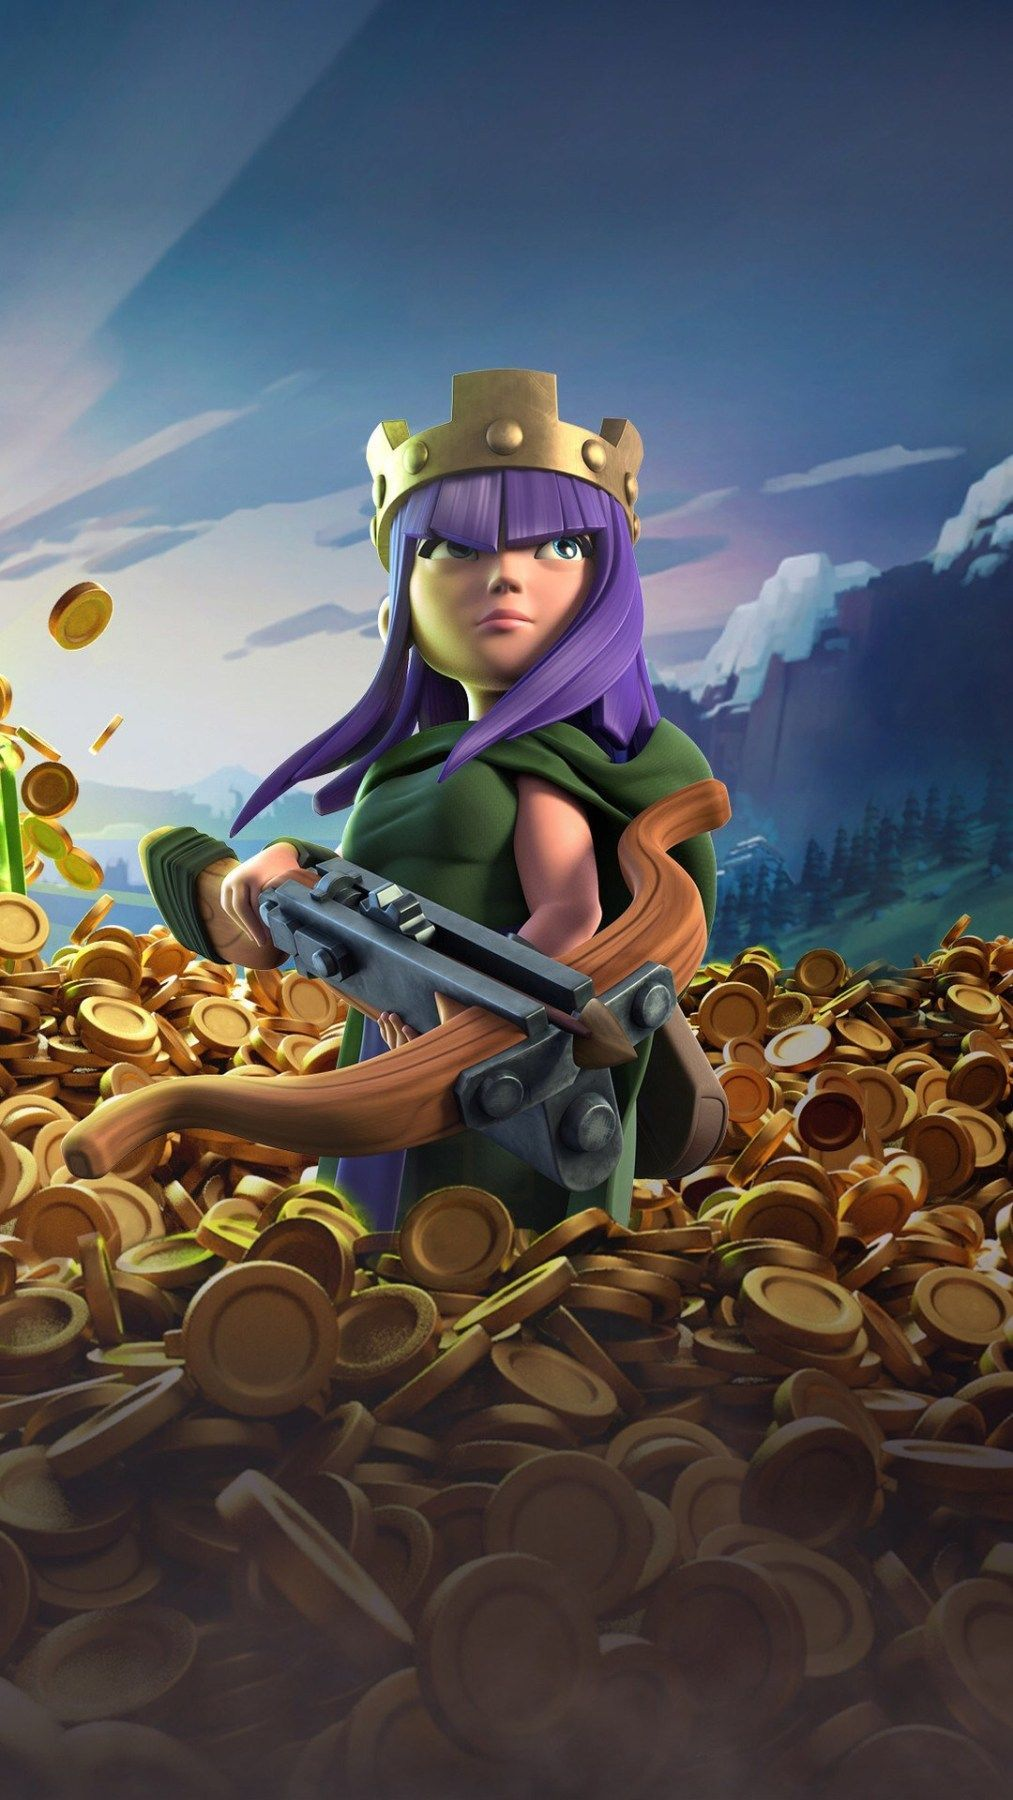 Clash Of Clans HD iPhone Wallpapers - Wallpaper Cave